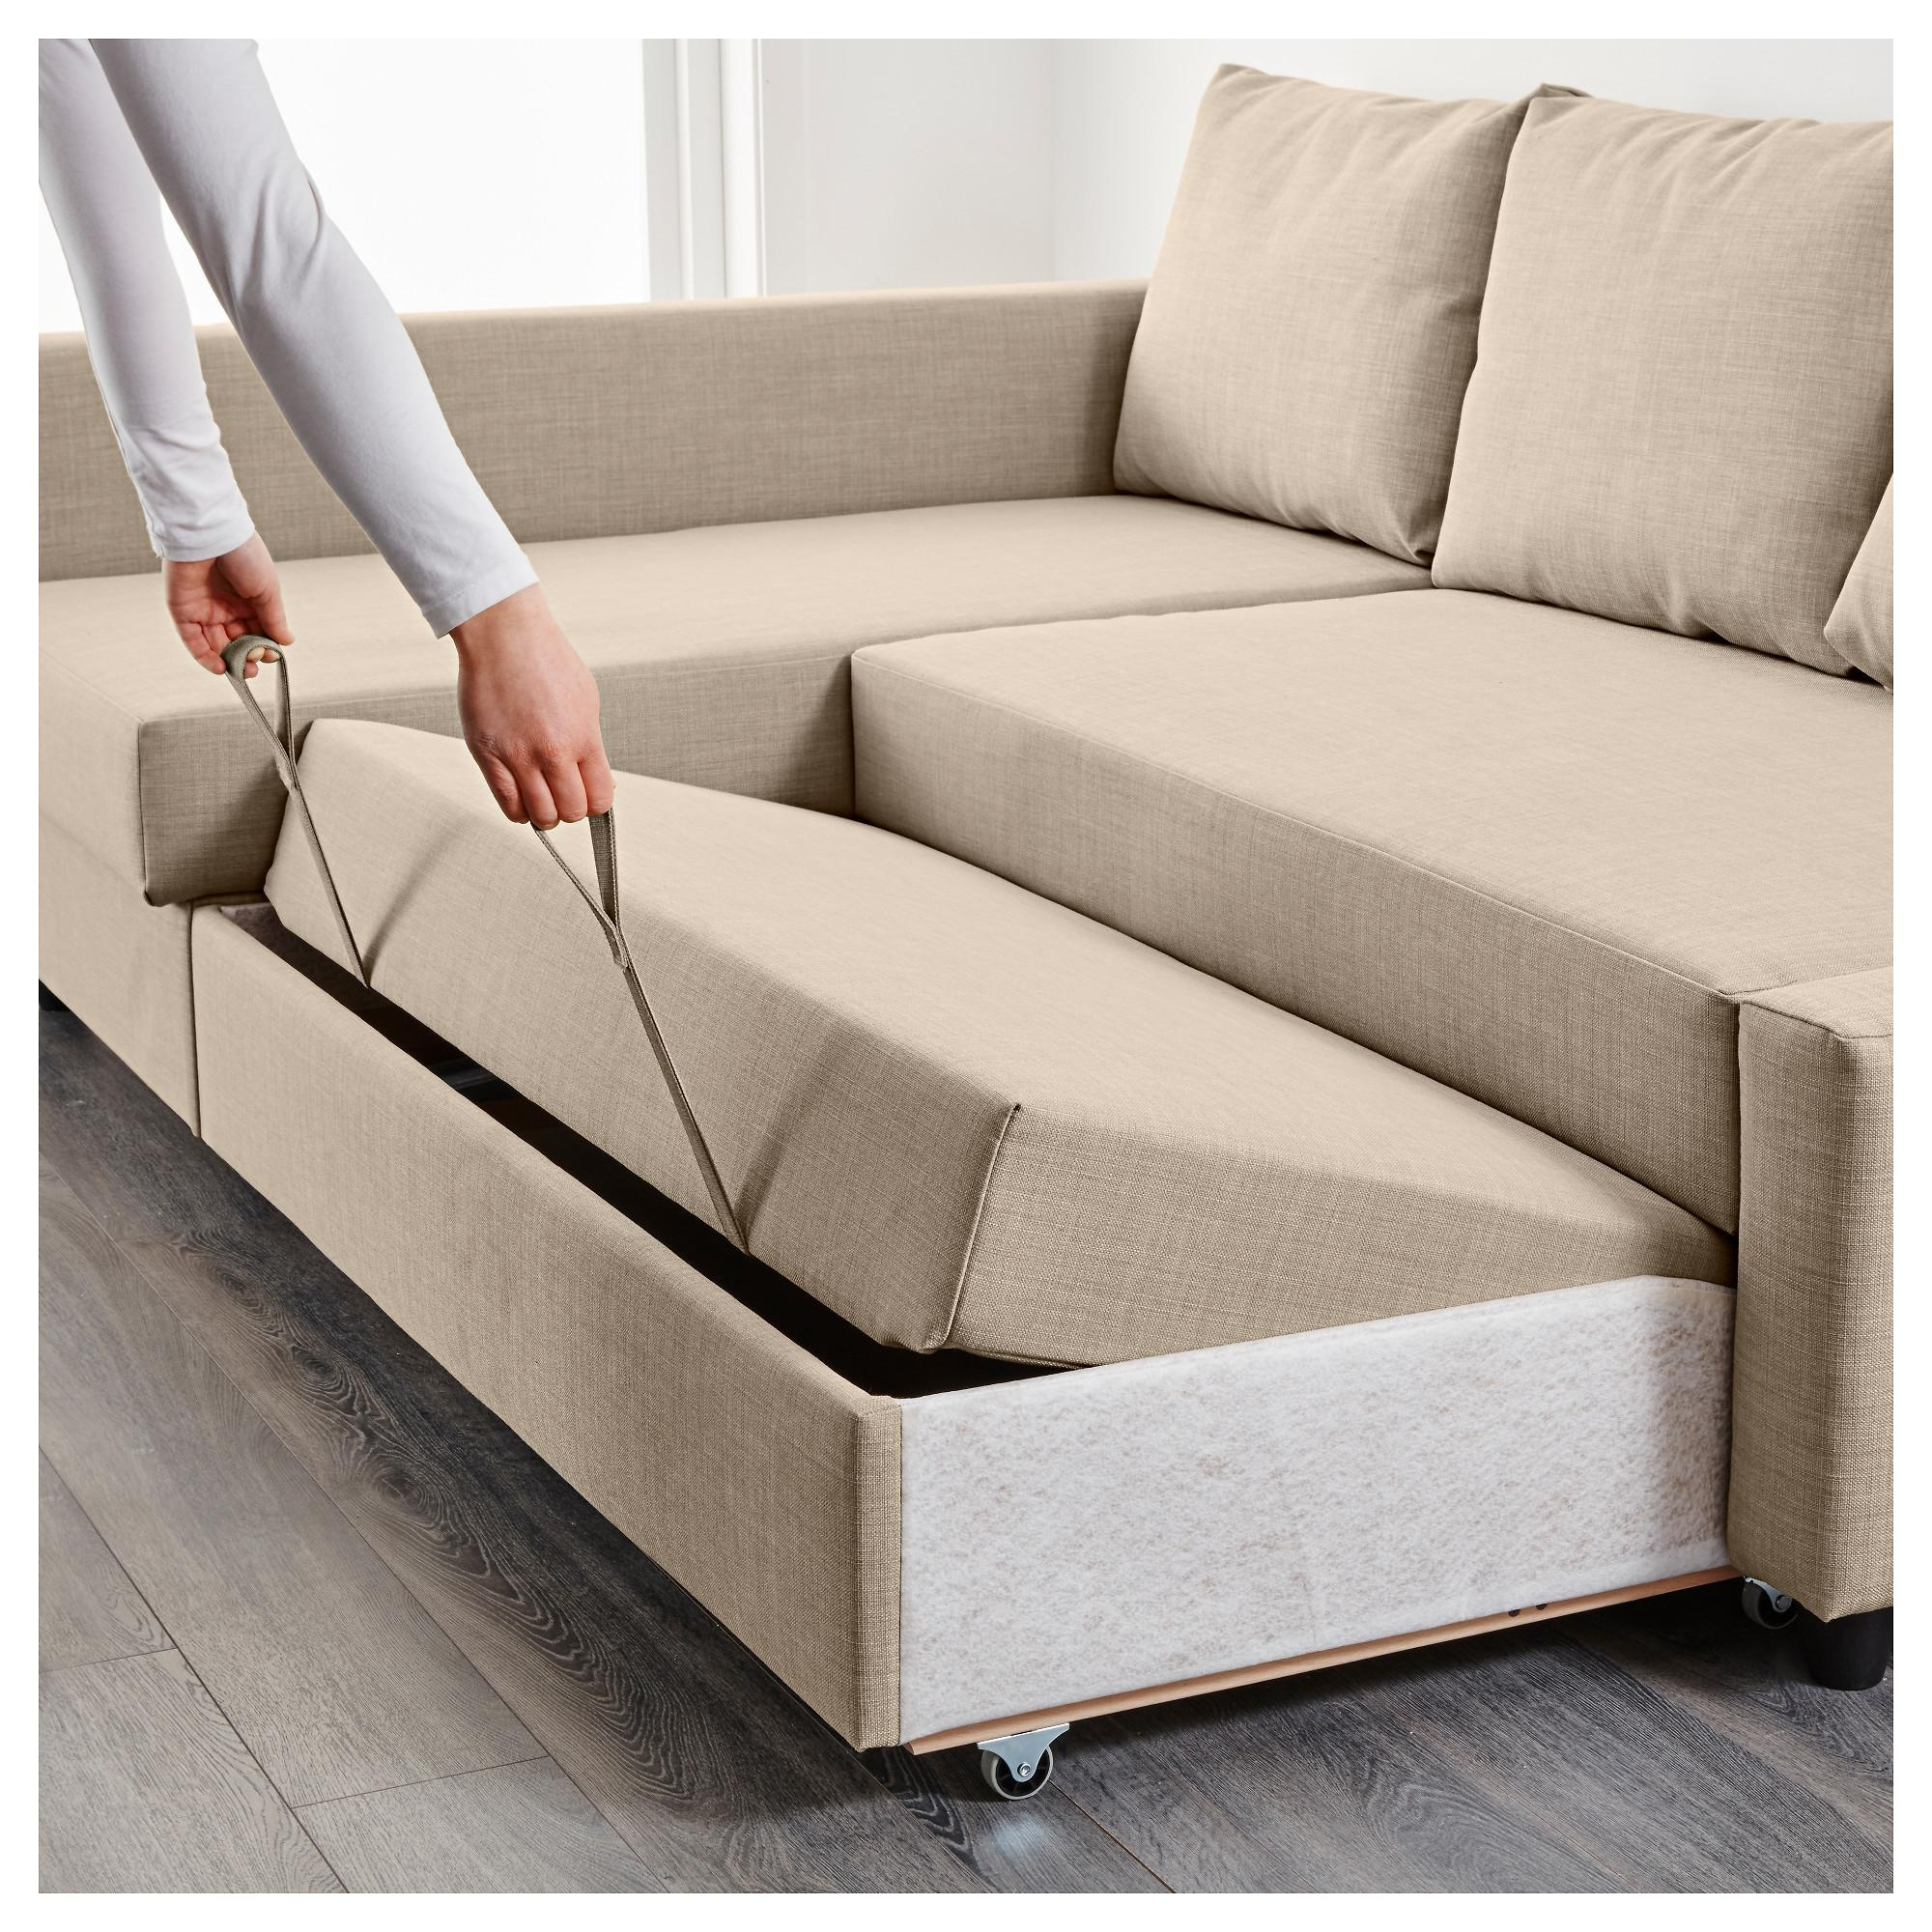 friheten corner sofa bed skiftebo beige images of brown leather sofas with cushions 20 43 choices ikea storage ideas